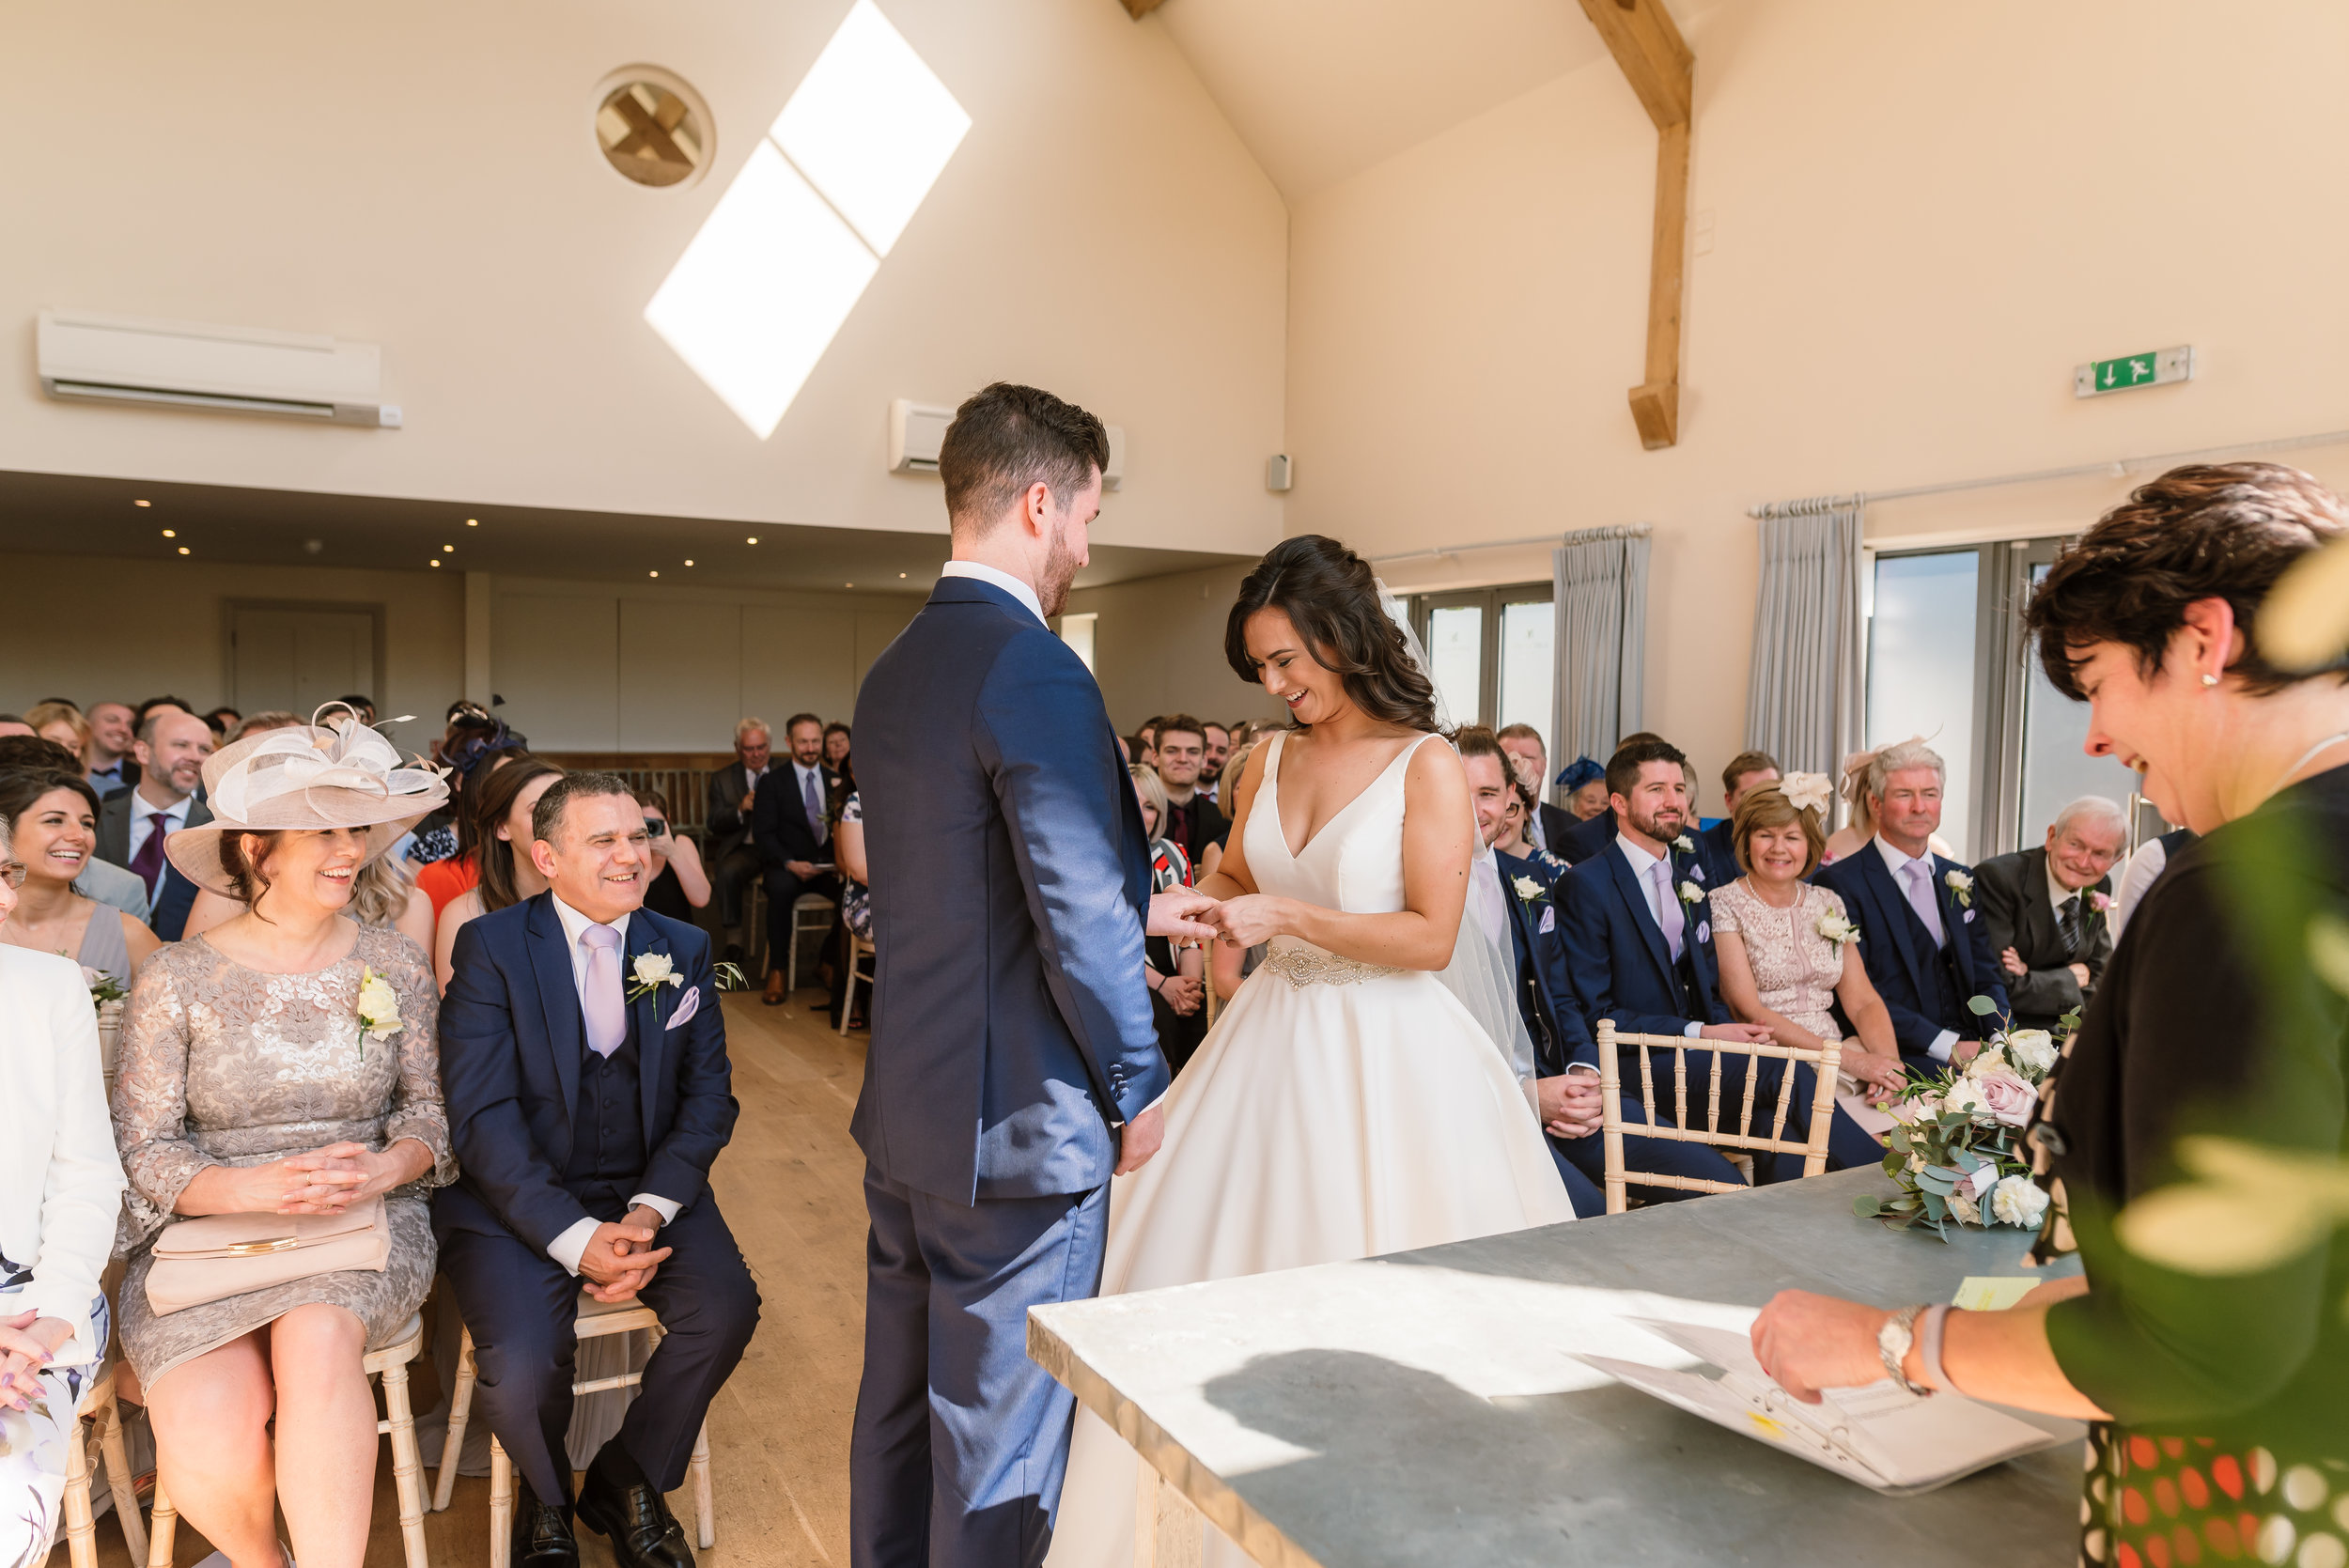 Sarah-Fishlock-Photography : Hampshire-wedding-photographer-hampshire : fleet-wedding-photographer-fleet : Millbridge-Court-Wedding-Photographer : Millbridge-Court-Wedding